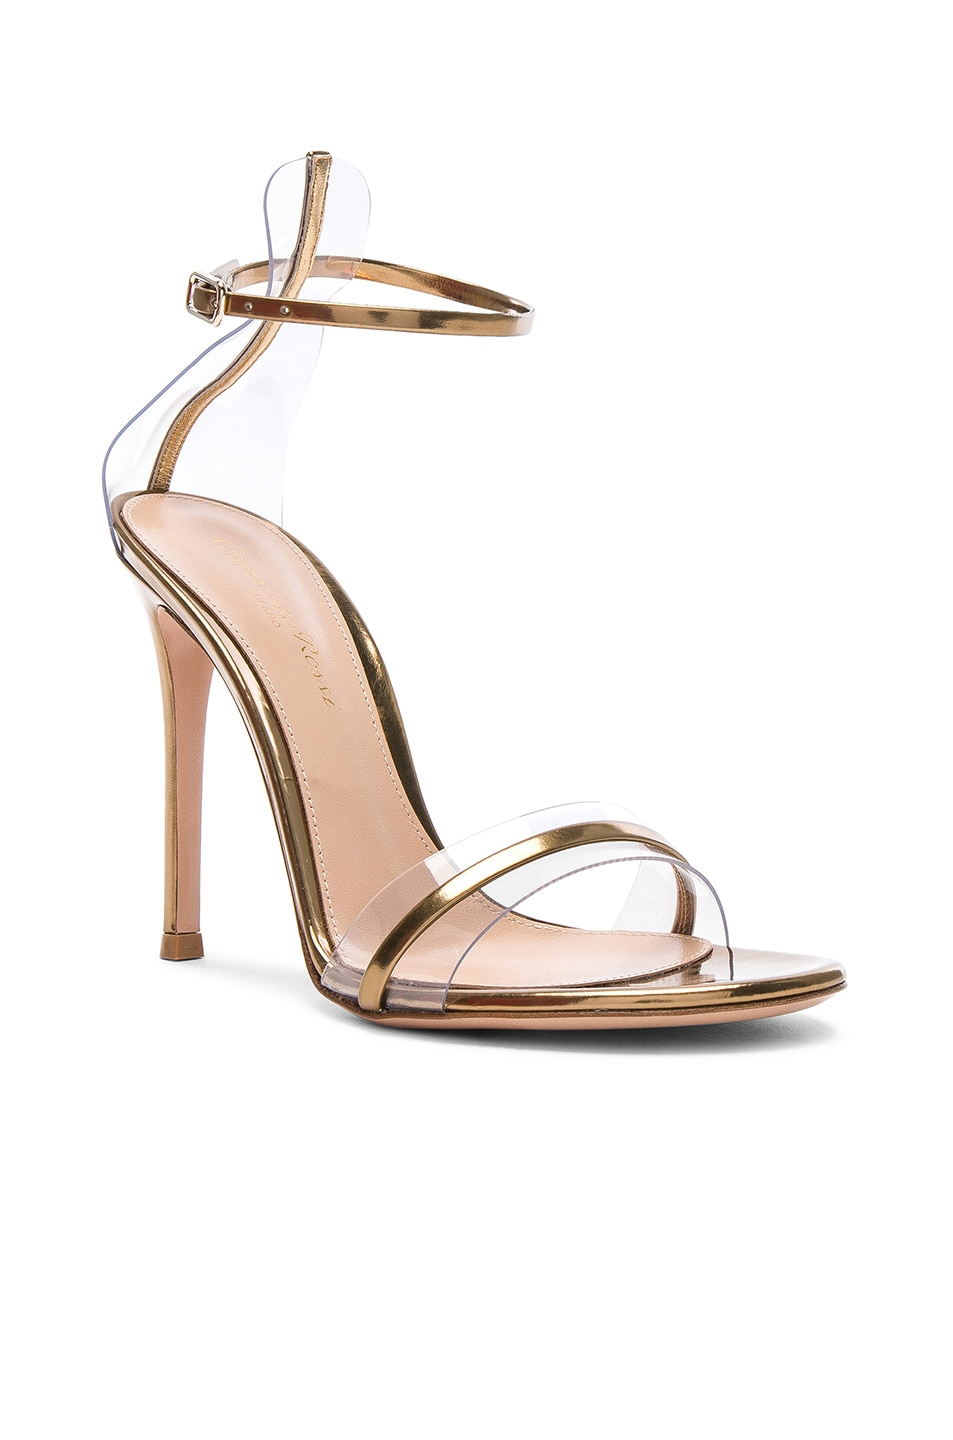 Image 2 of Gianvito Rossi Leather Plexi G-String Heels in Metal Mekong & Transparent